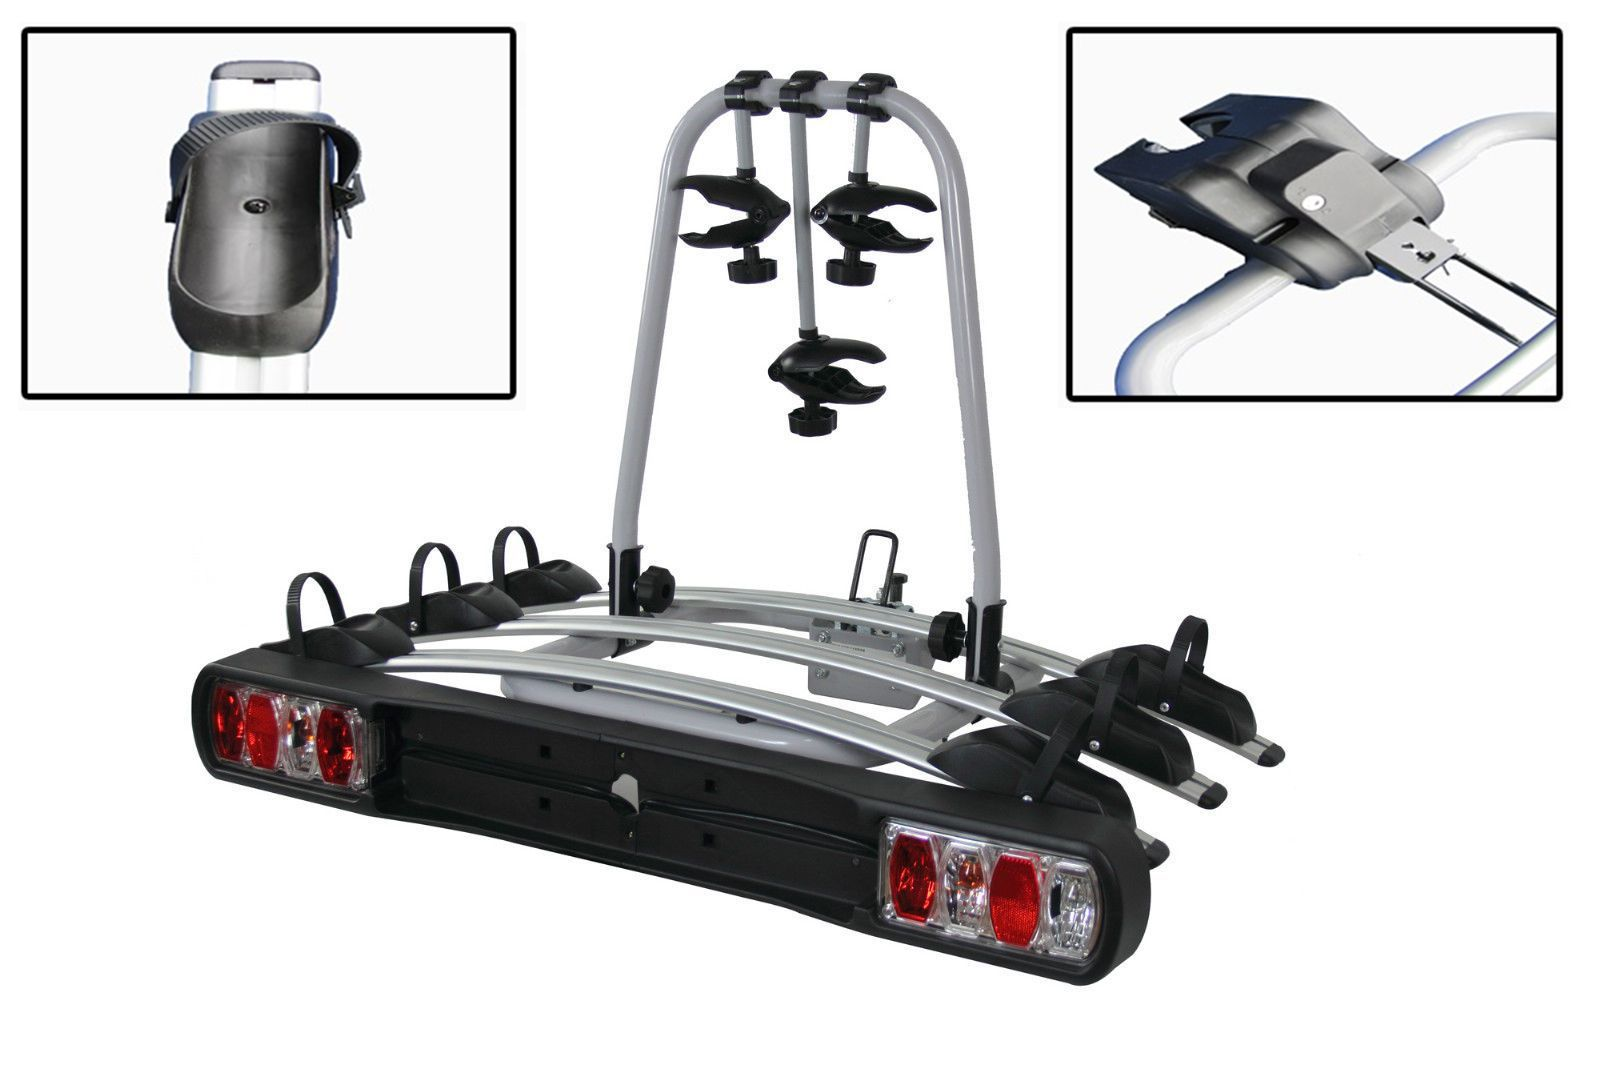 7f27ff91e47 Tow Bar Mounted 3 Bike Cycle Carrier - Bicycle Rack Carry Lights Cycling  Secure Transport